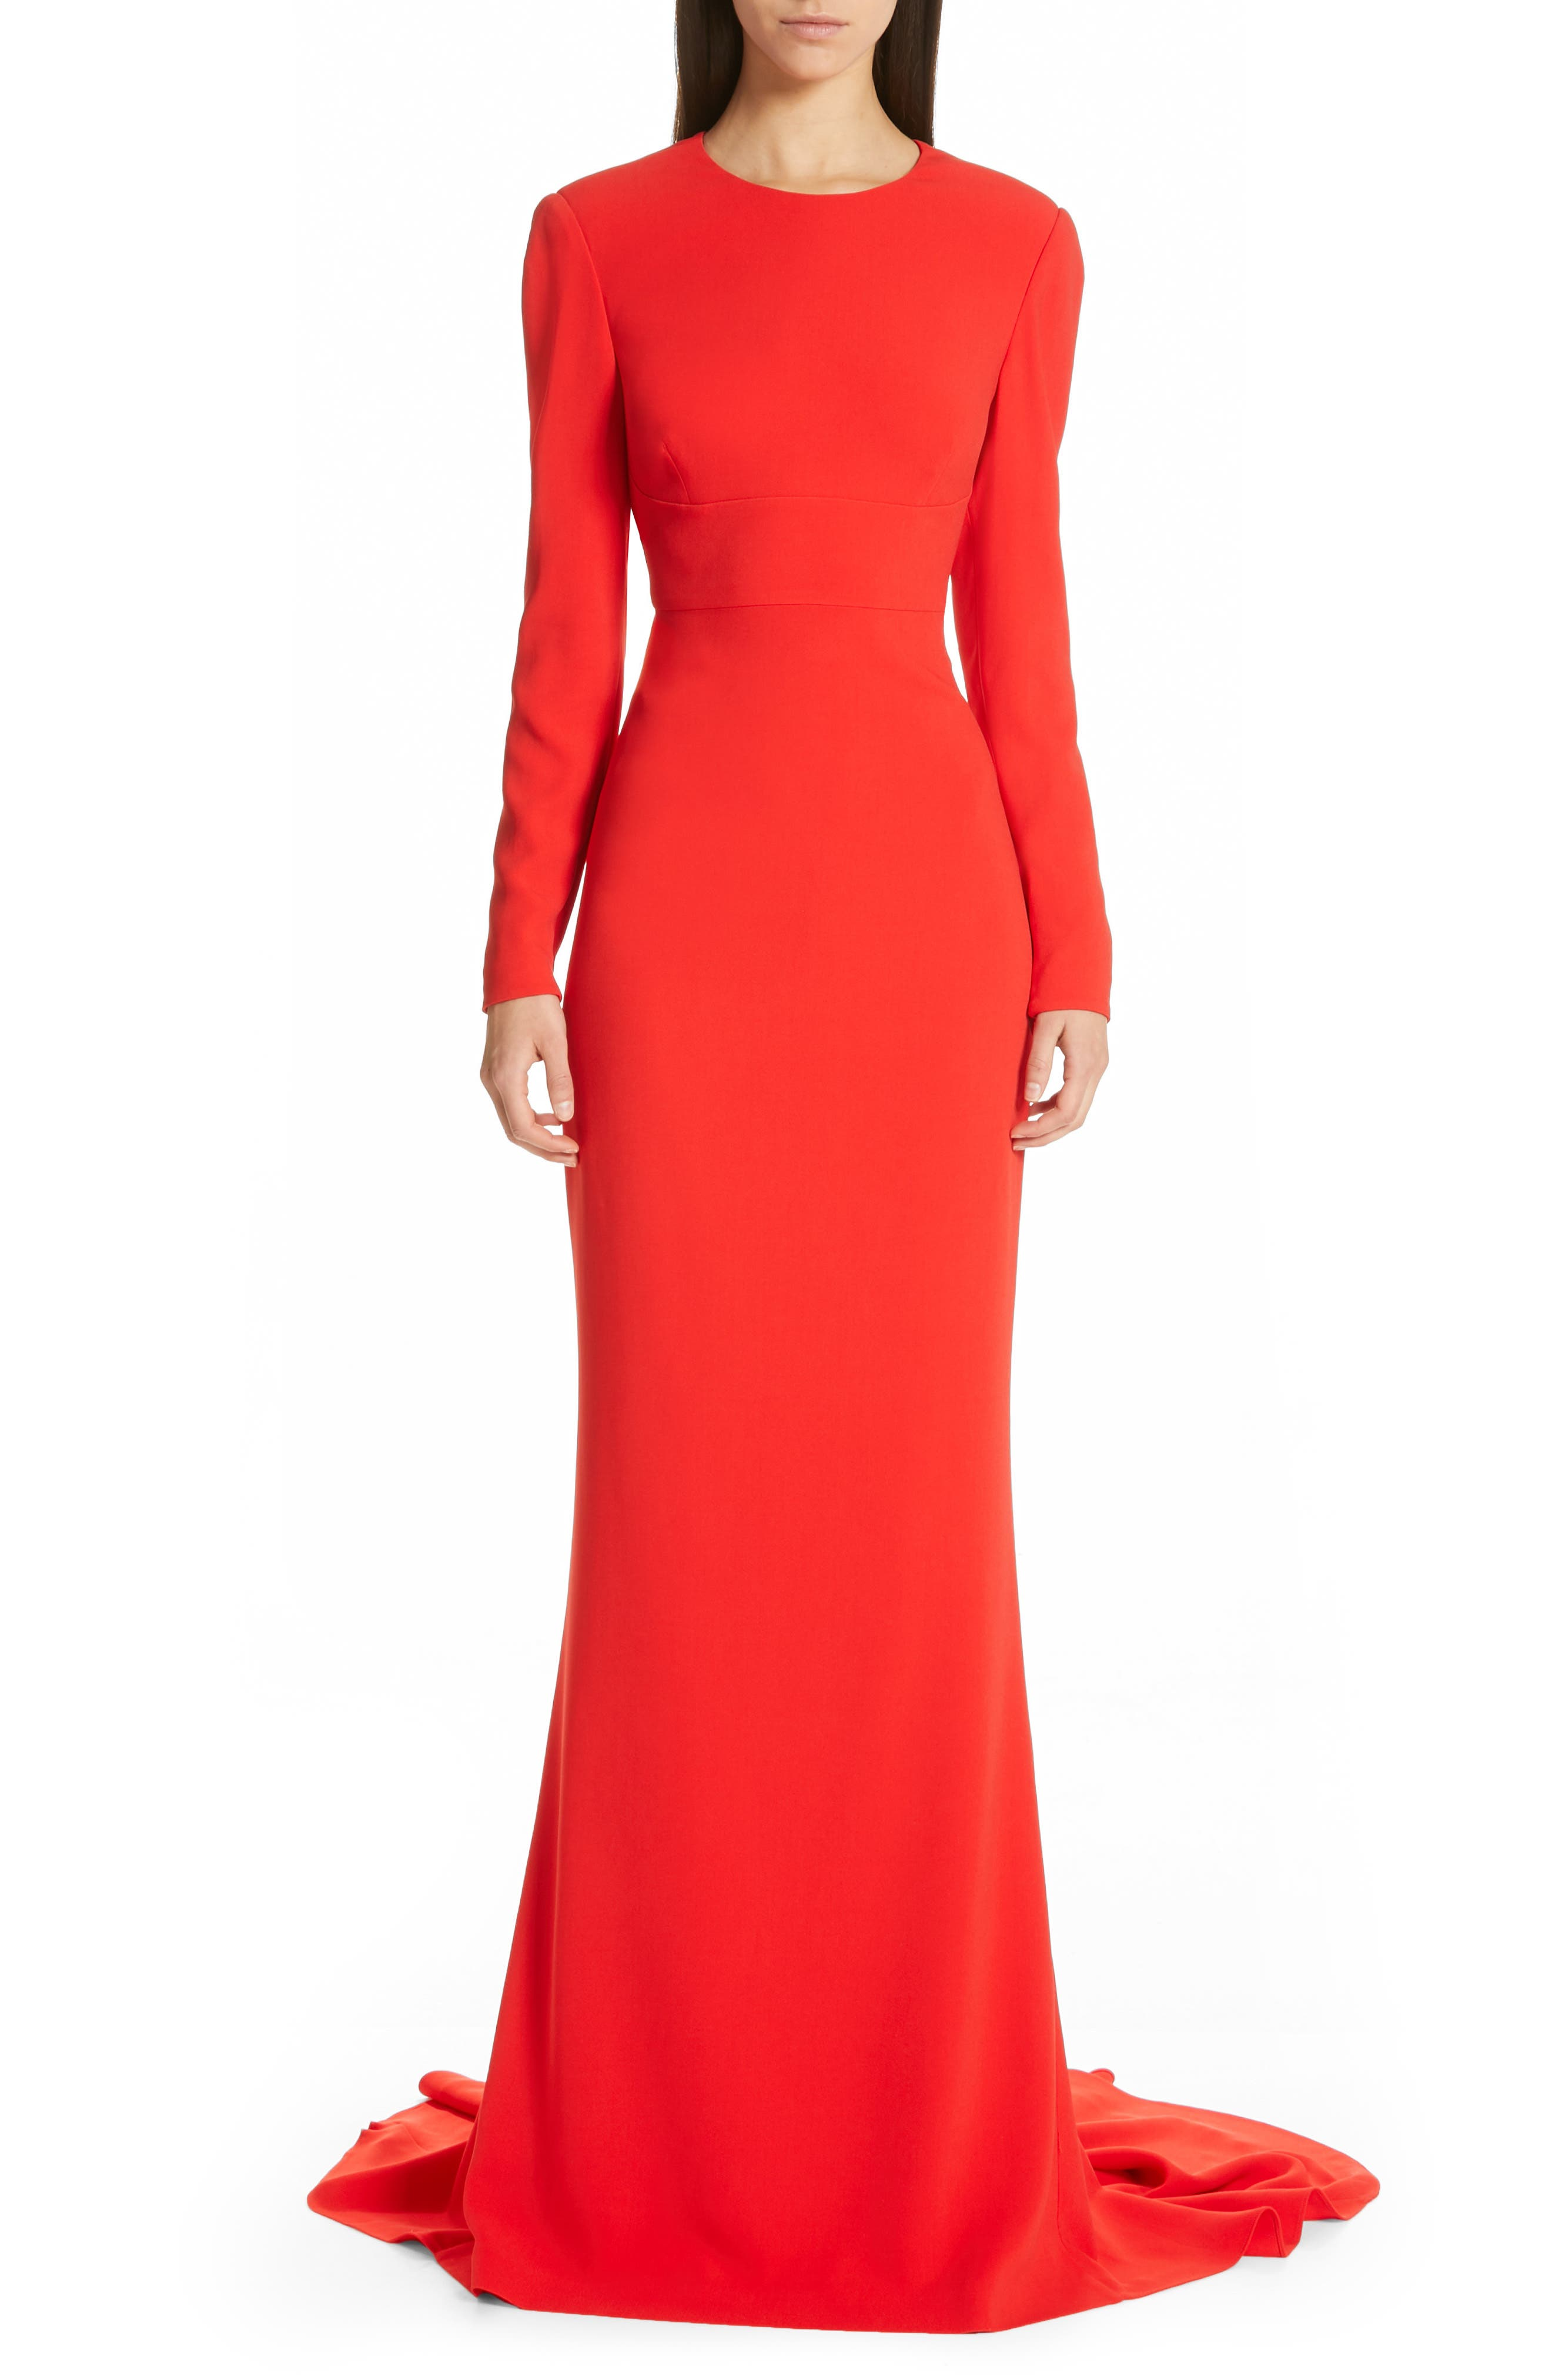 Stella Mccartney Ruby Cutout Sheath Gown, US / 50 IT - Red